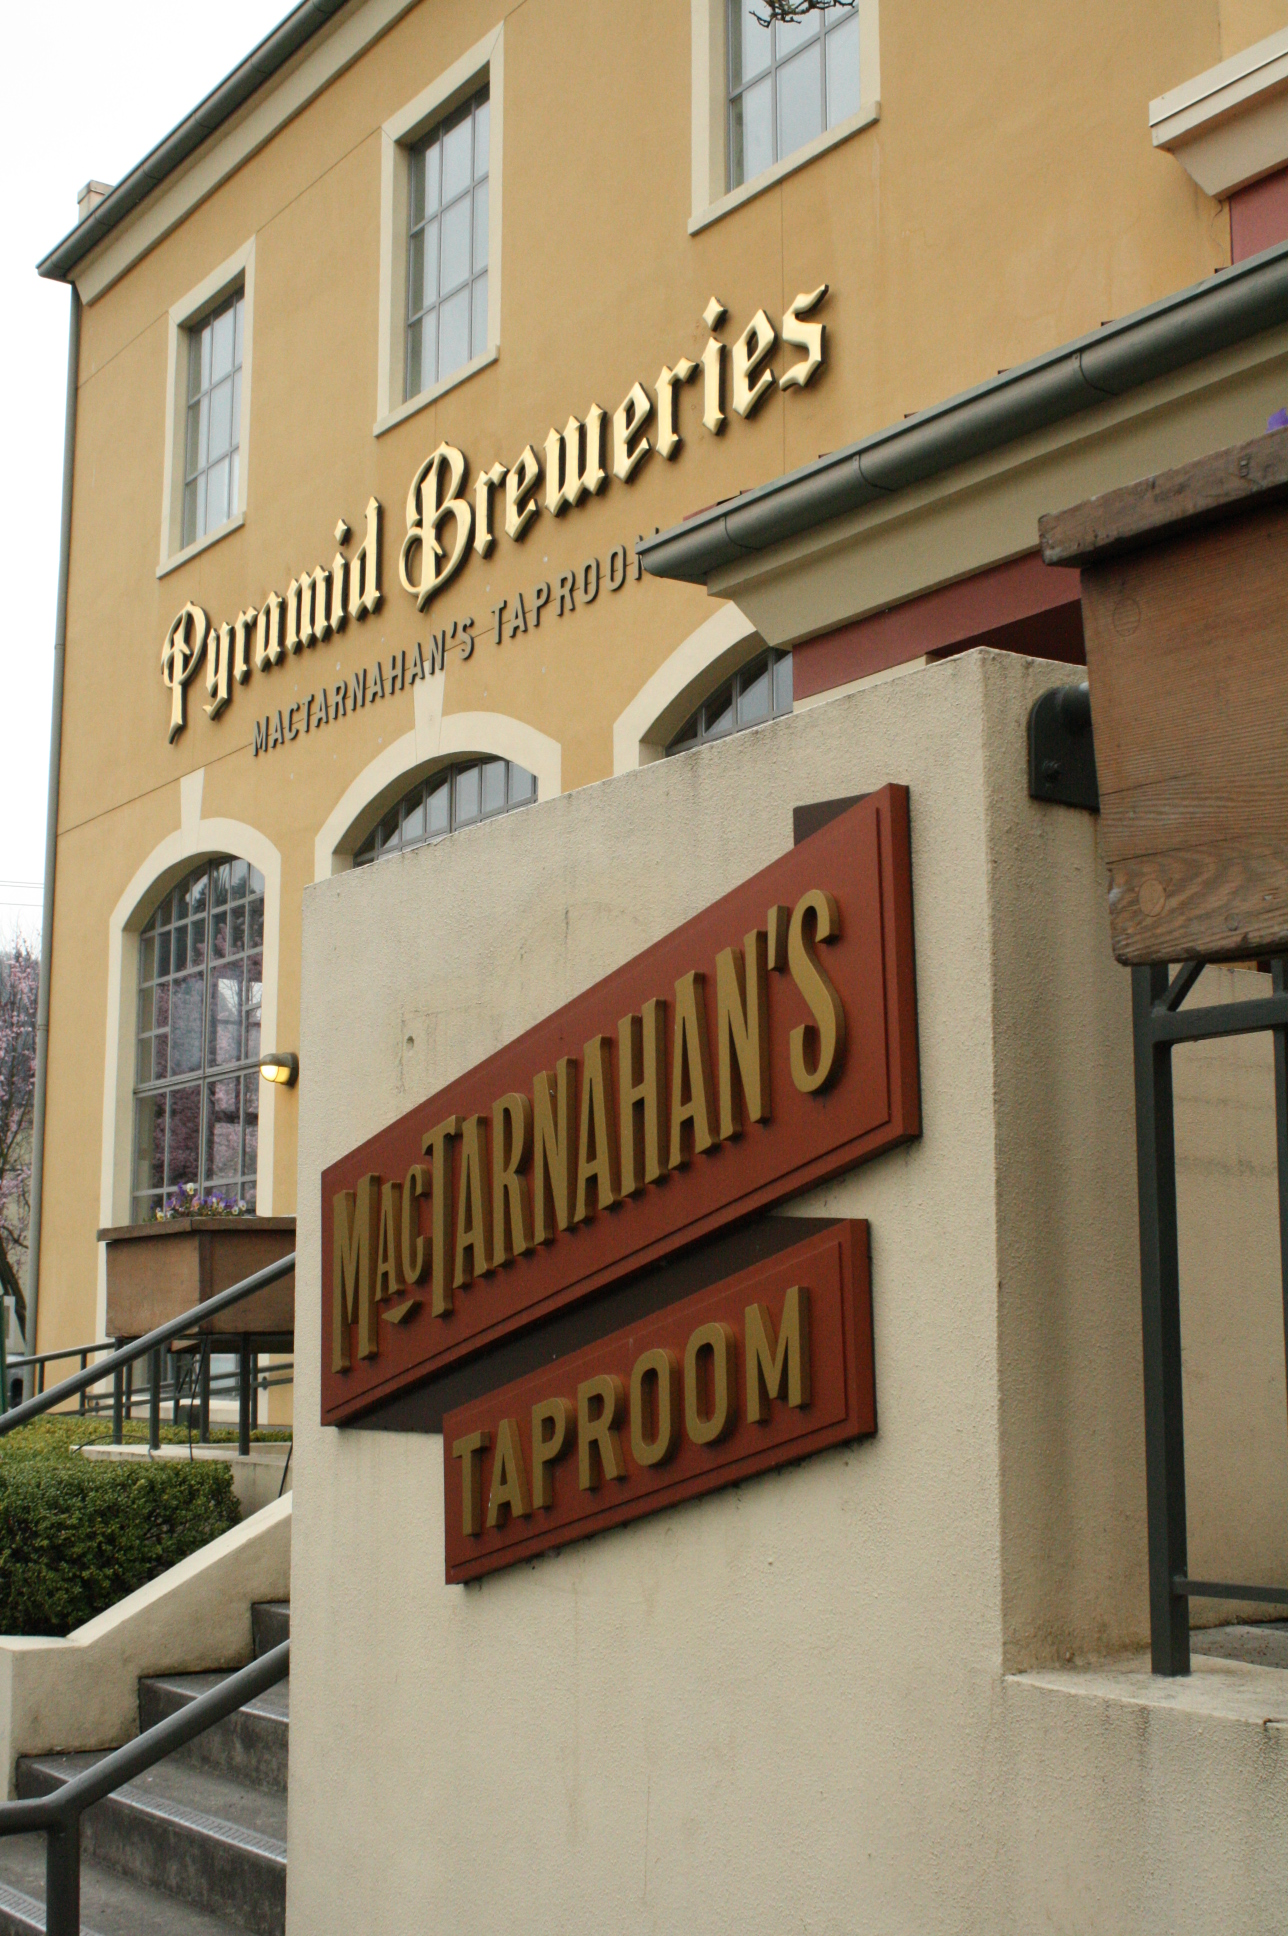 Pyramid Taproom